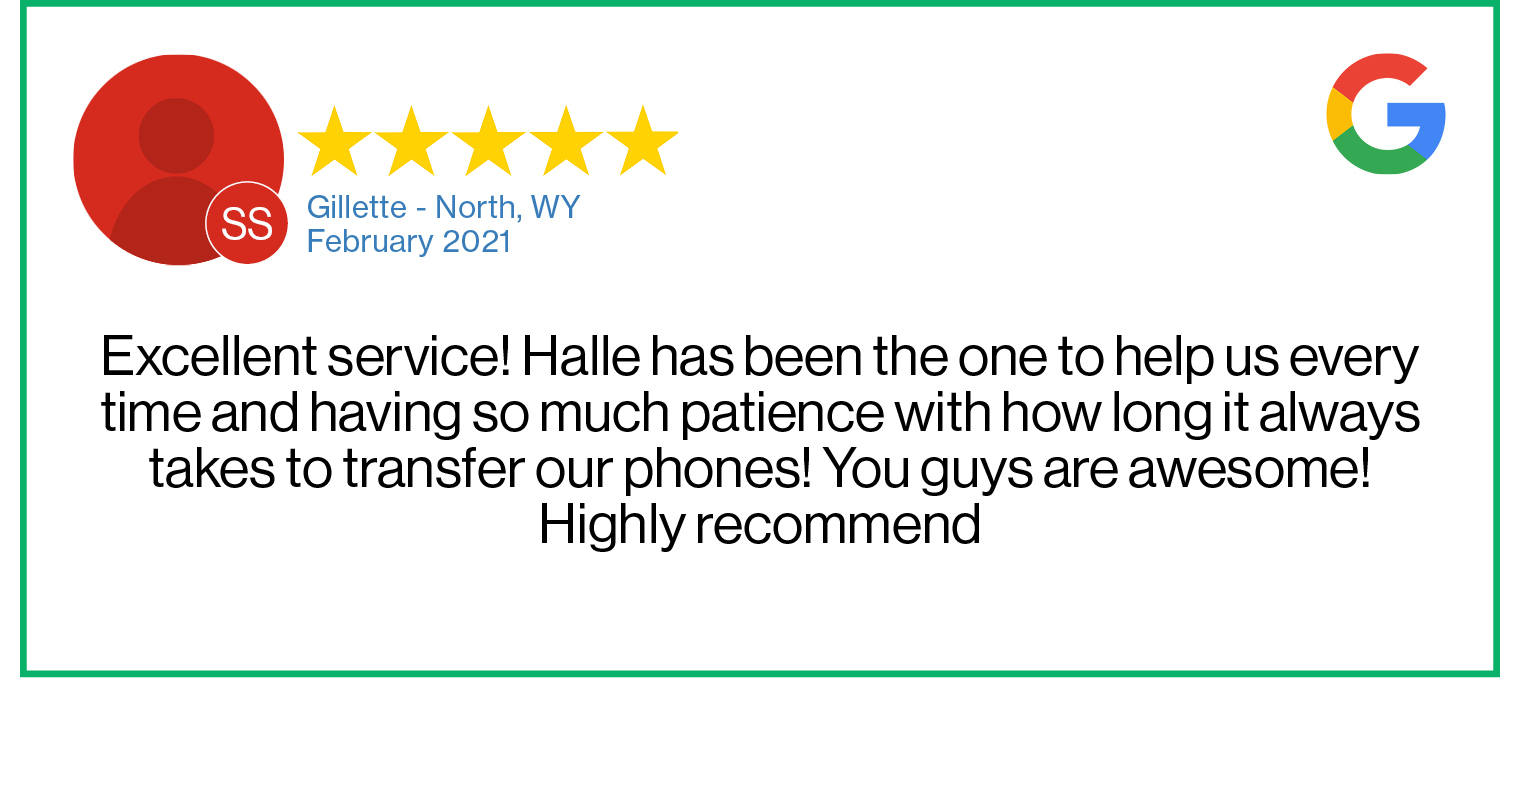 Check out this recent customer review about the Verizon Cellular Plus store in Gillette, Wyoming.